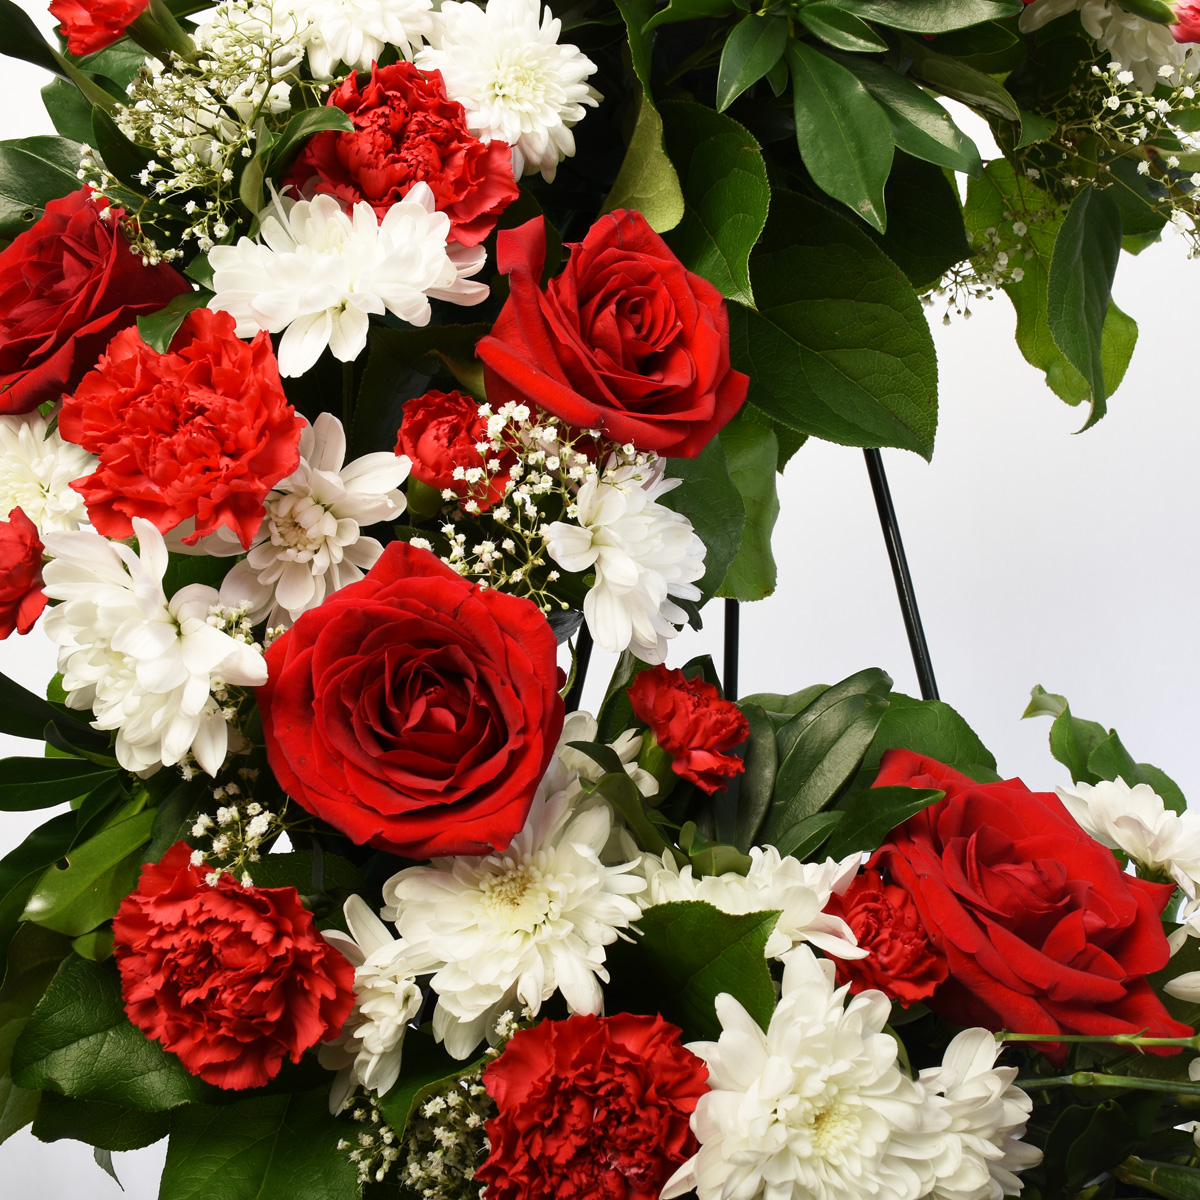 Red and white inch luxury wreath 24 inch by Burnaby Florist Adele Rae